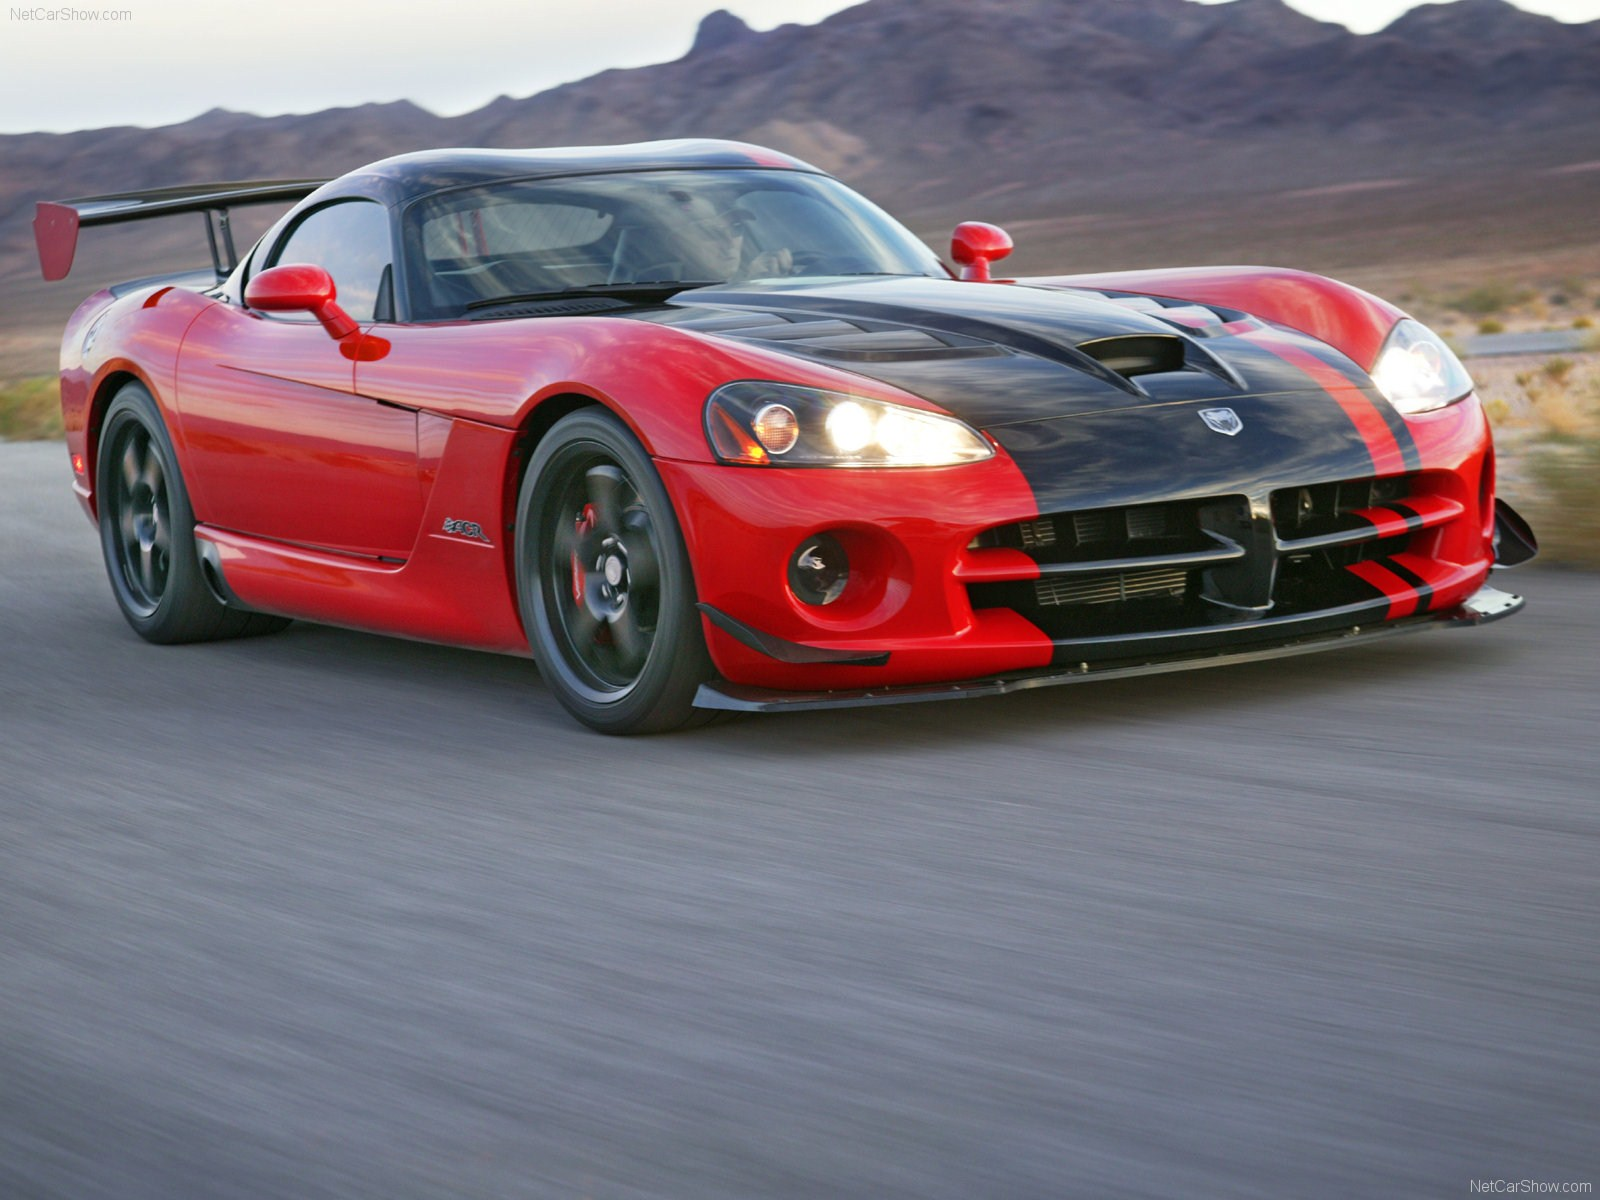 2015 Srt Viper Acr Widescreen Images Black And White